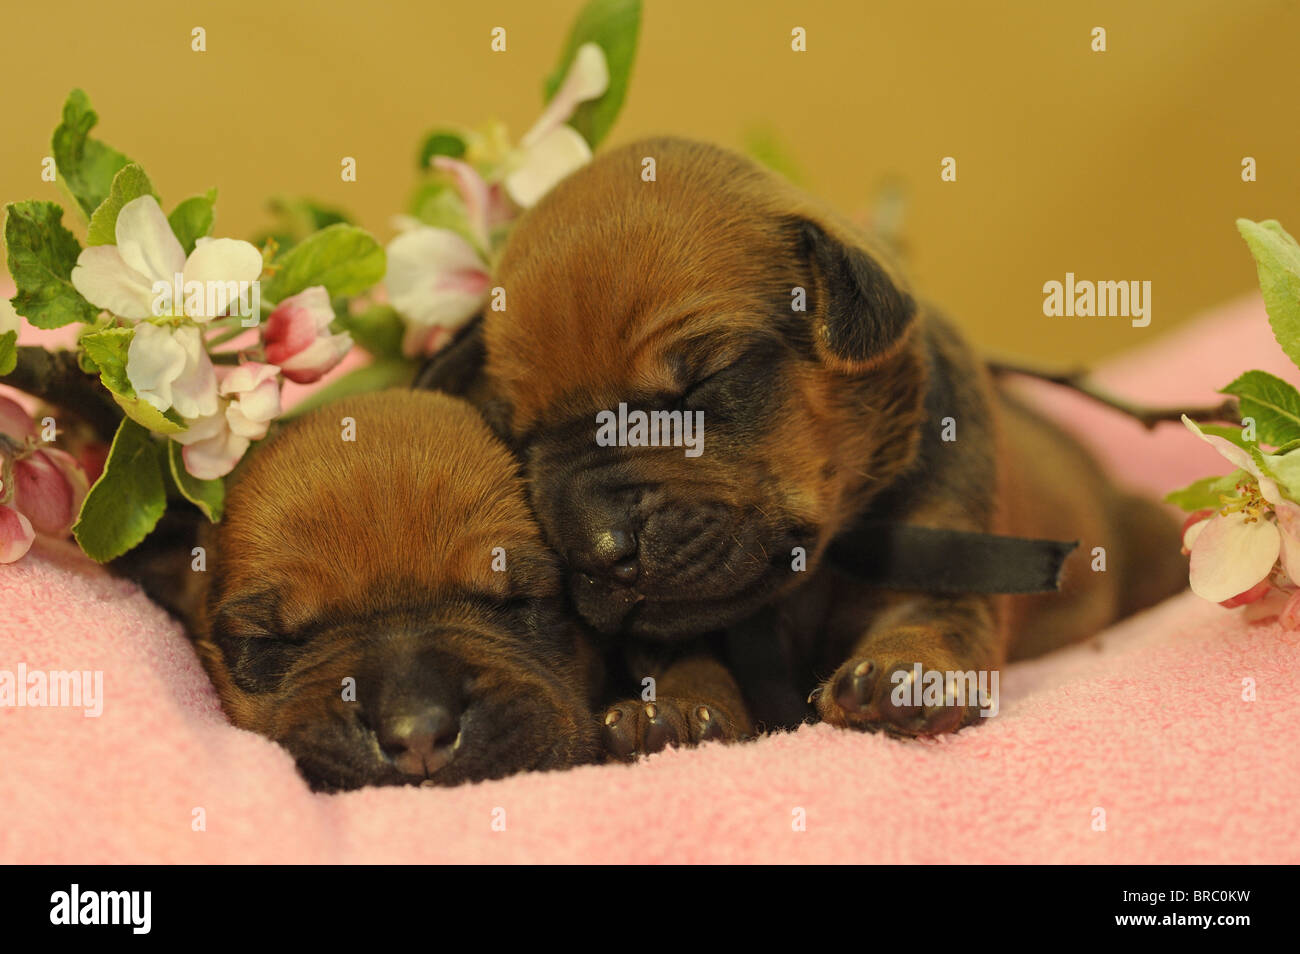 Rhodesian Ridgeback (Canis lupus familiaris). Two puppies sleeping on a pink towel next to apple flowers. Stock Photo